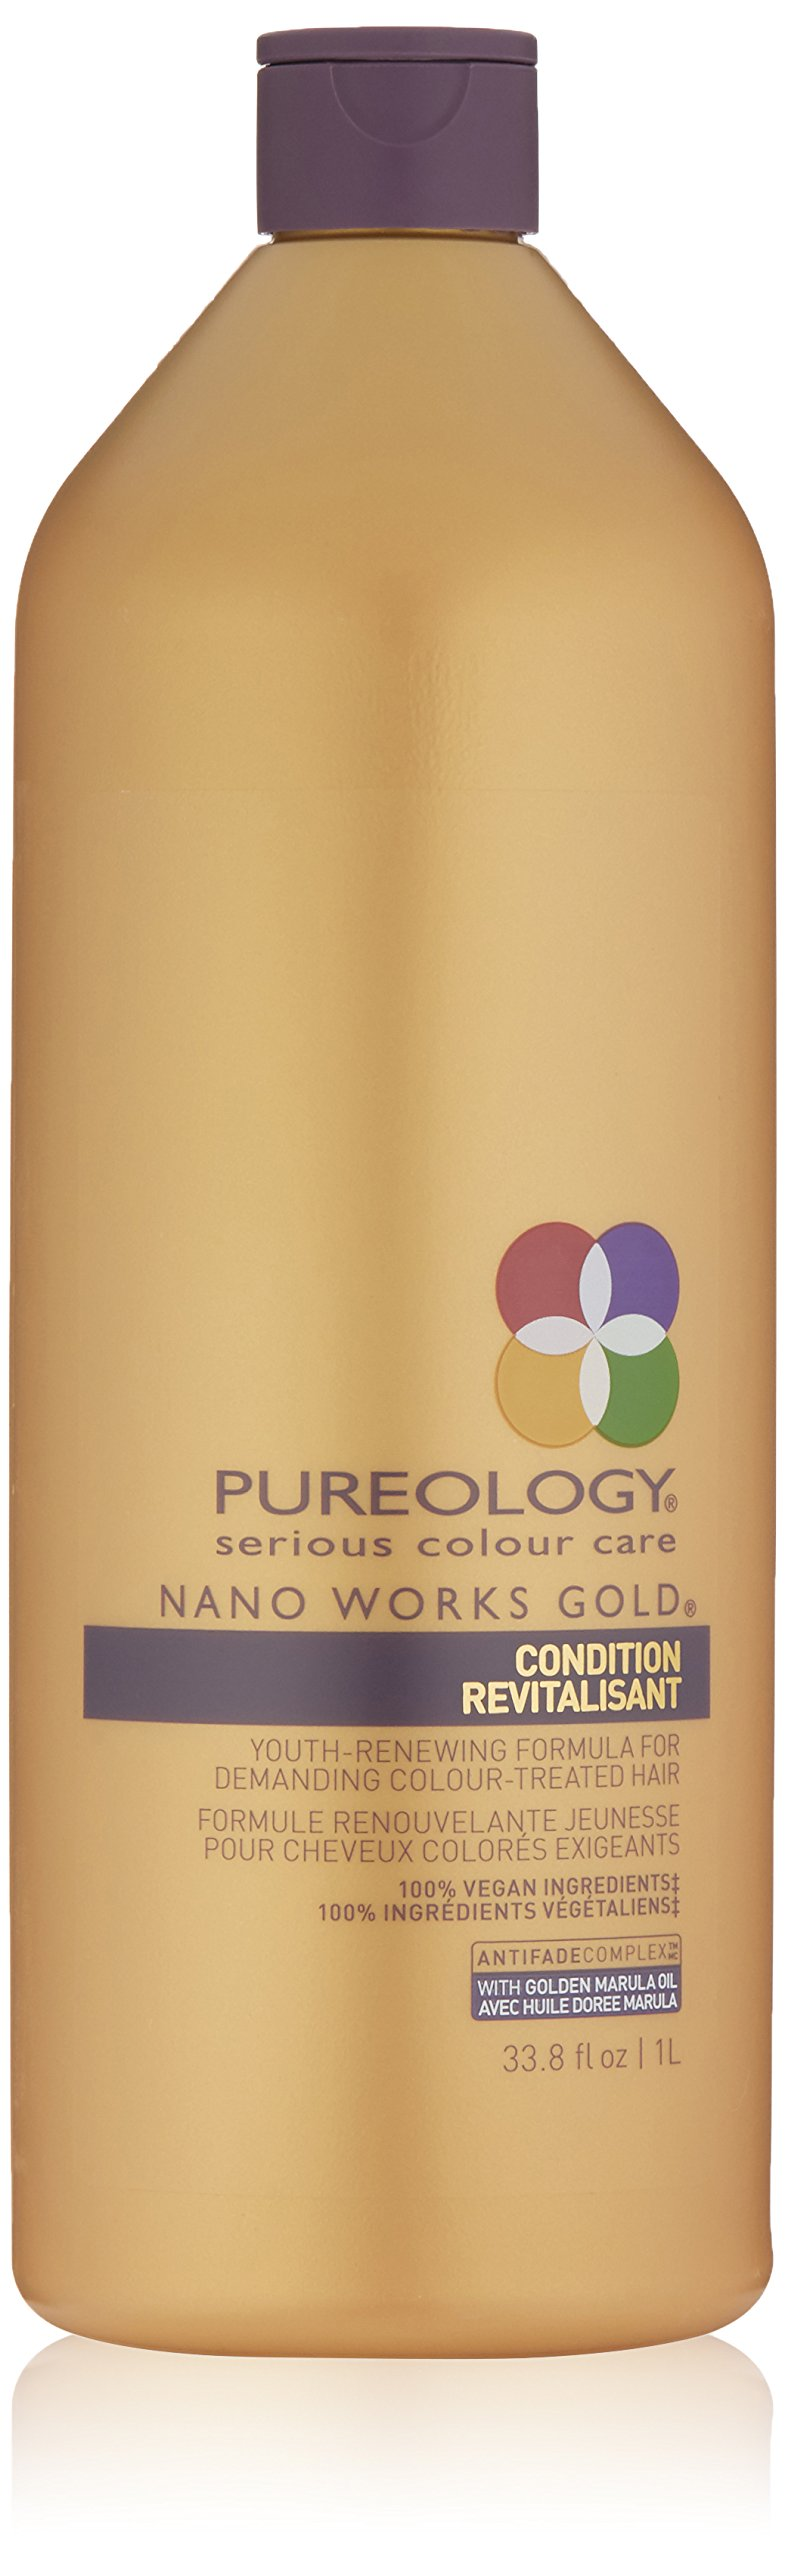 Pureology Nano Works Gold Conditioner ,33.8 Fl Oz